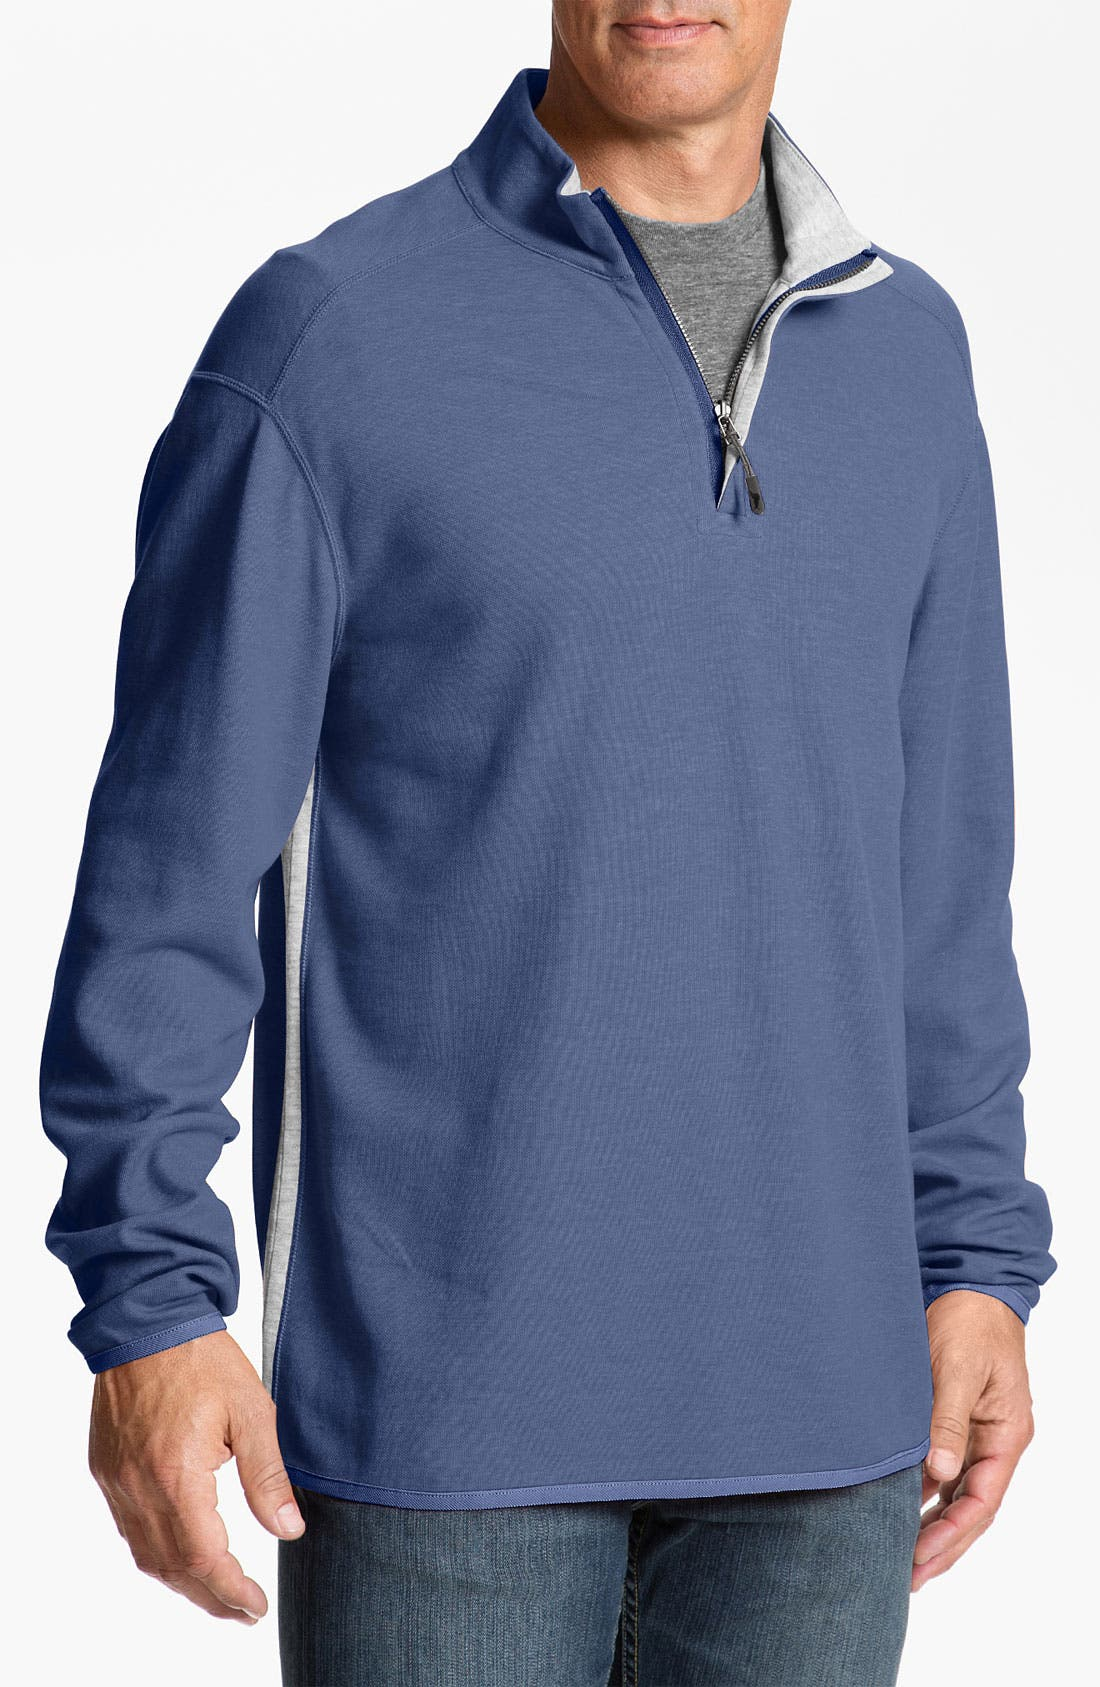 Alternate Image 1 Selected - Tommy Bahama 'Flip Out' Quarter Zip Pullover